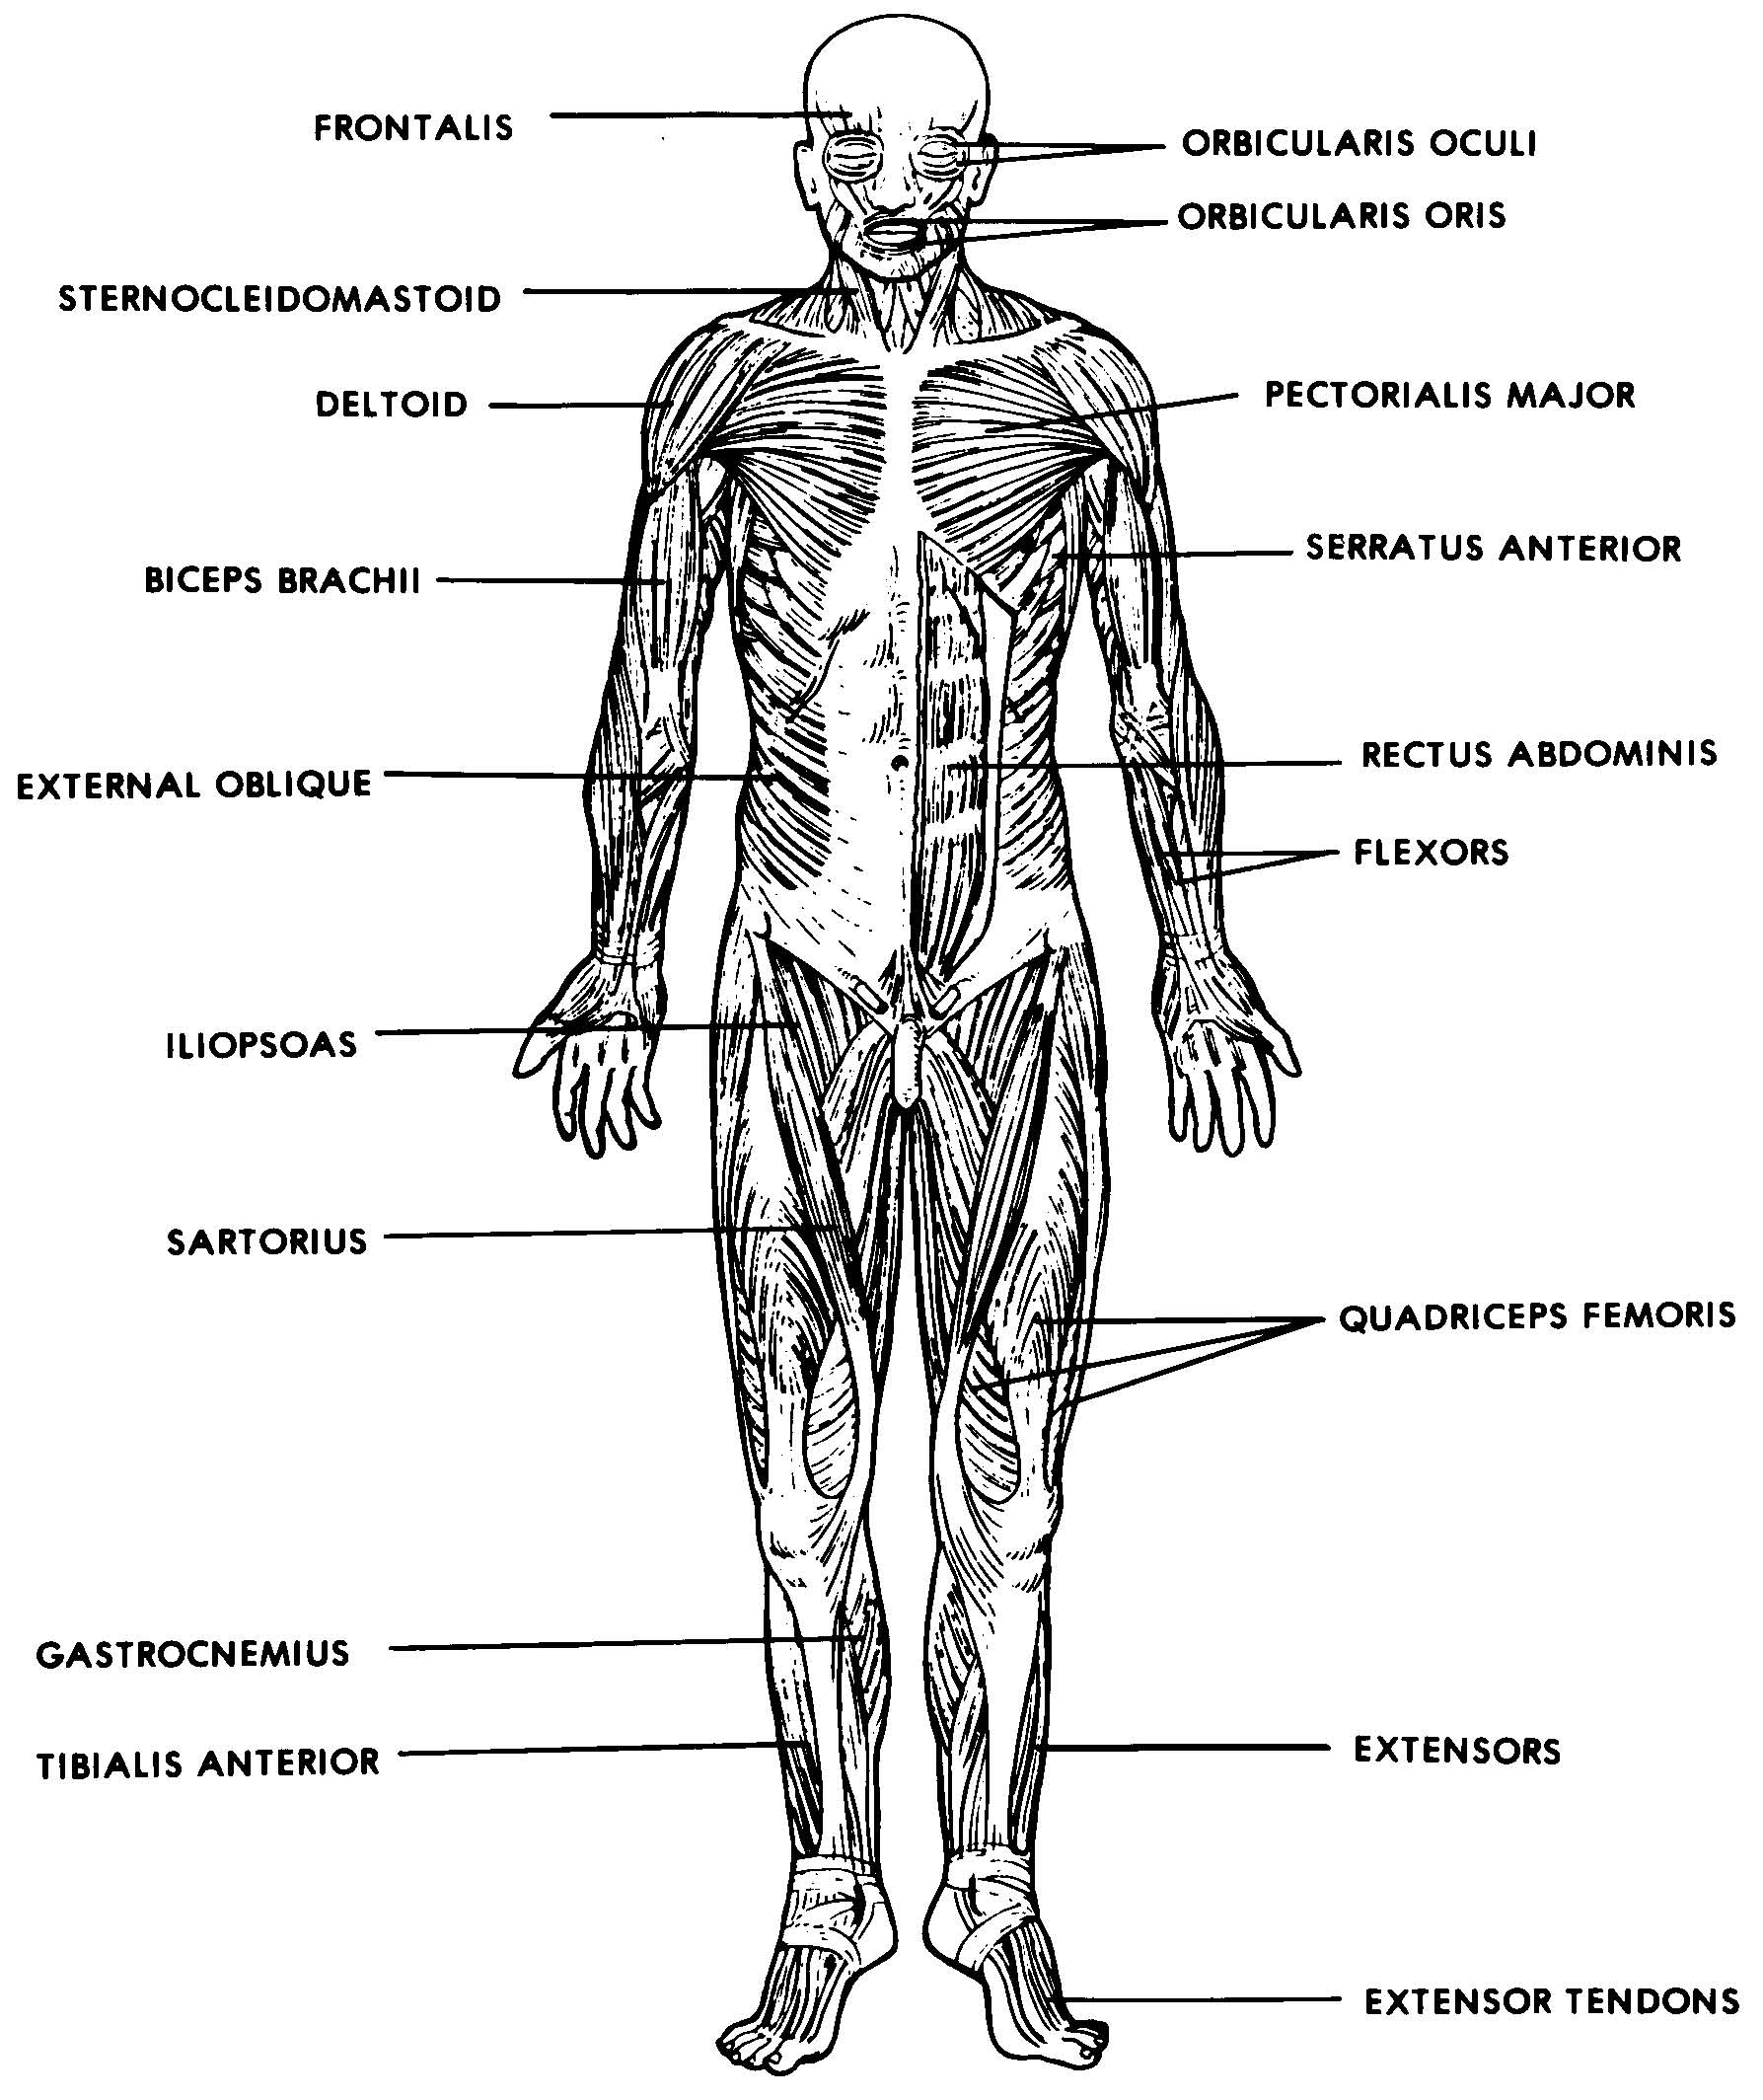 human muscles diagram labeled front and back ansul system relay images 05 muscular basic anatomy